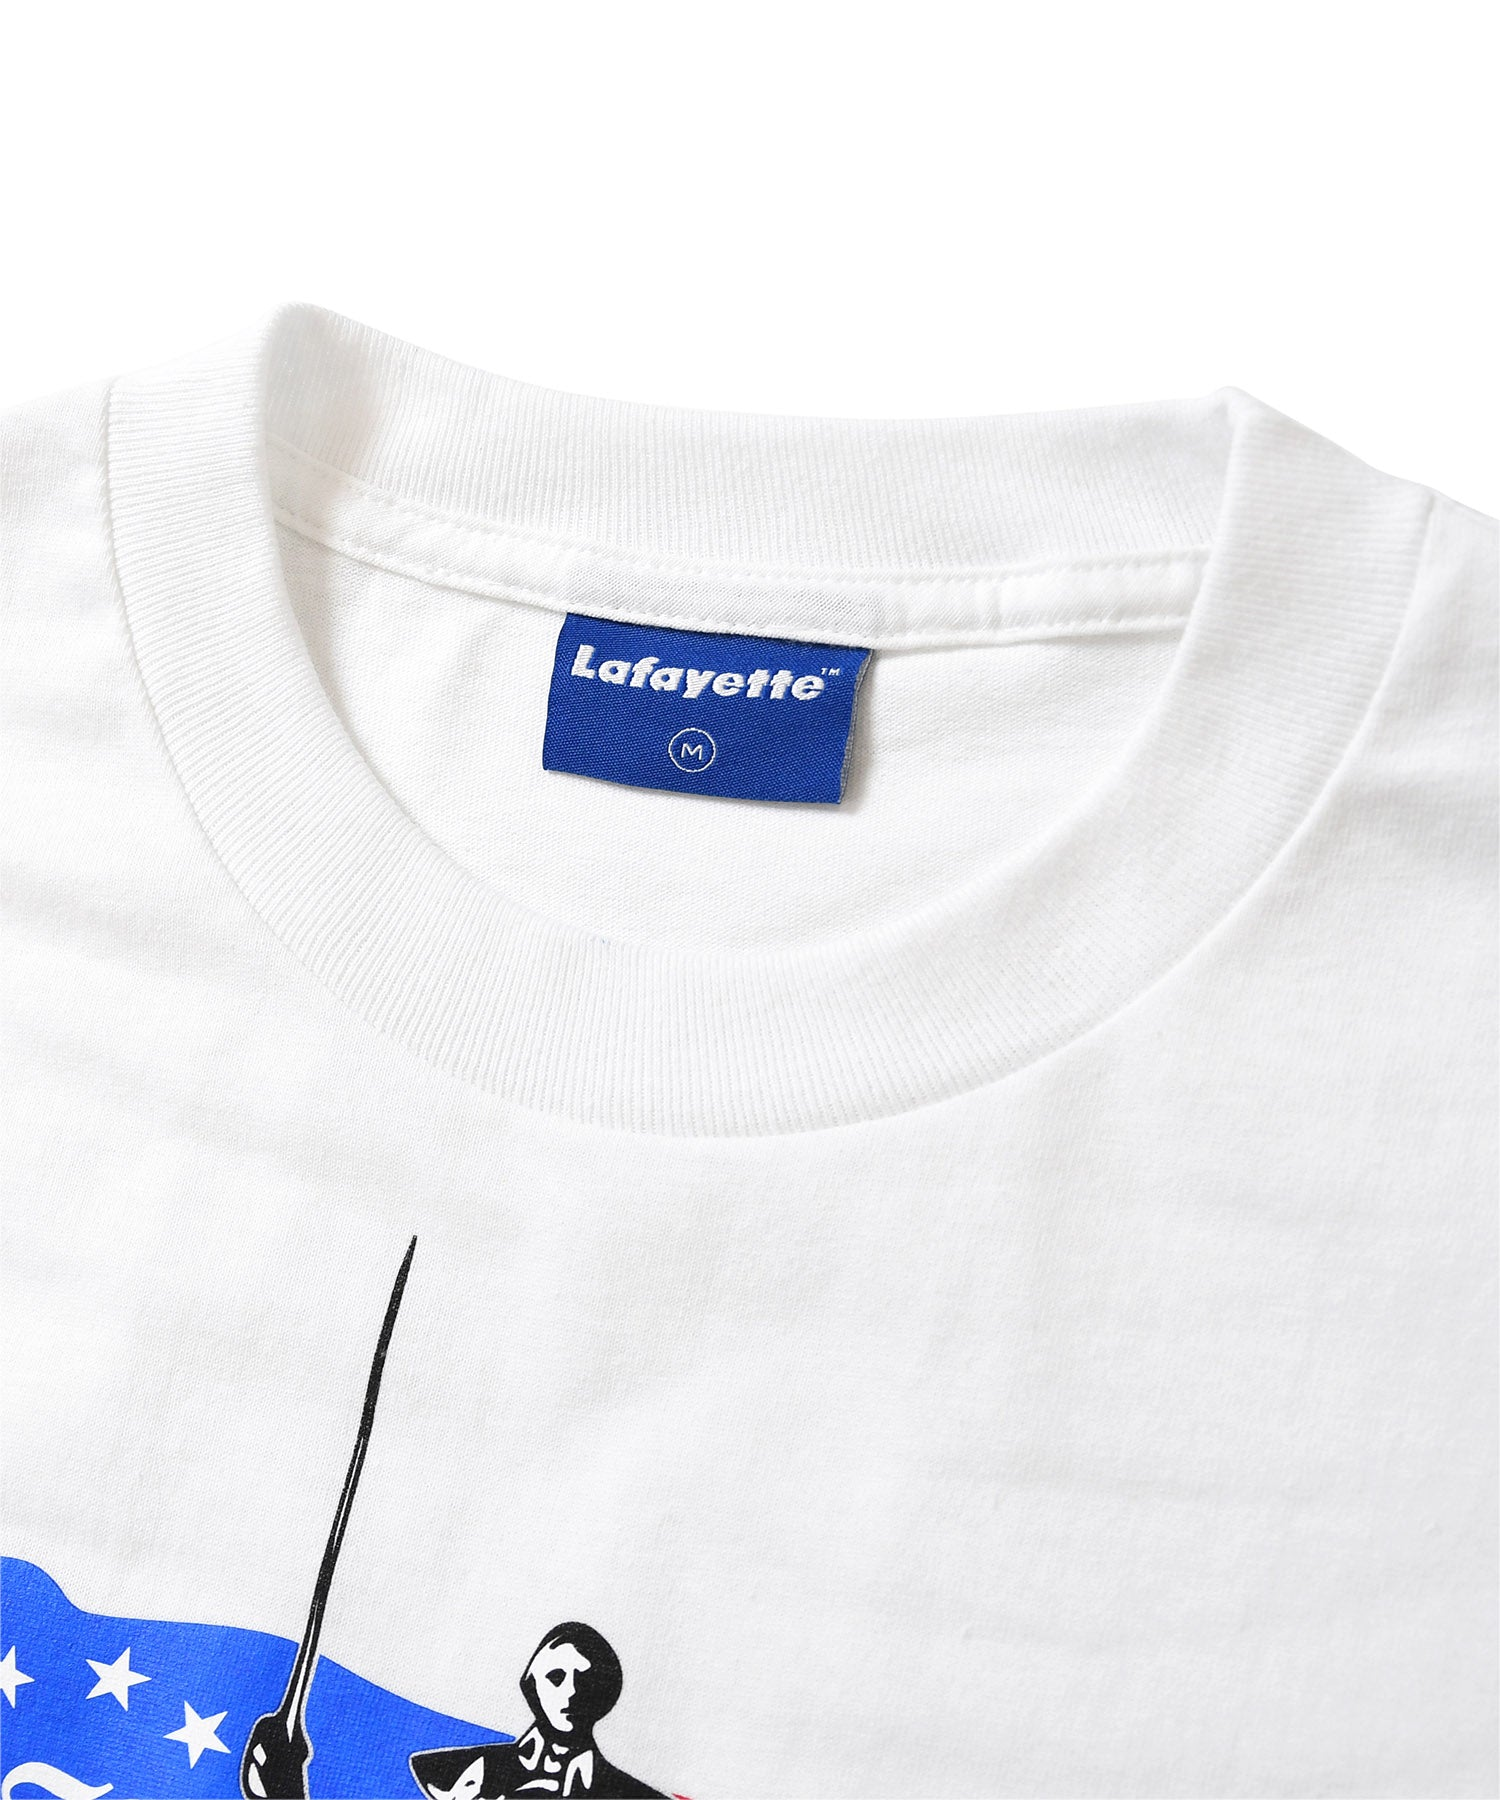 Lafayette LAFAYETTE IS COMING TEE LS200114 WHITE